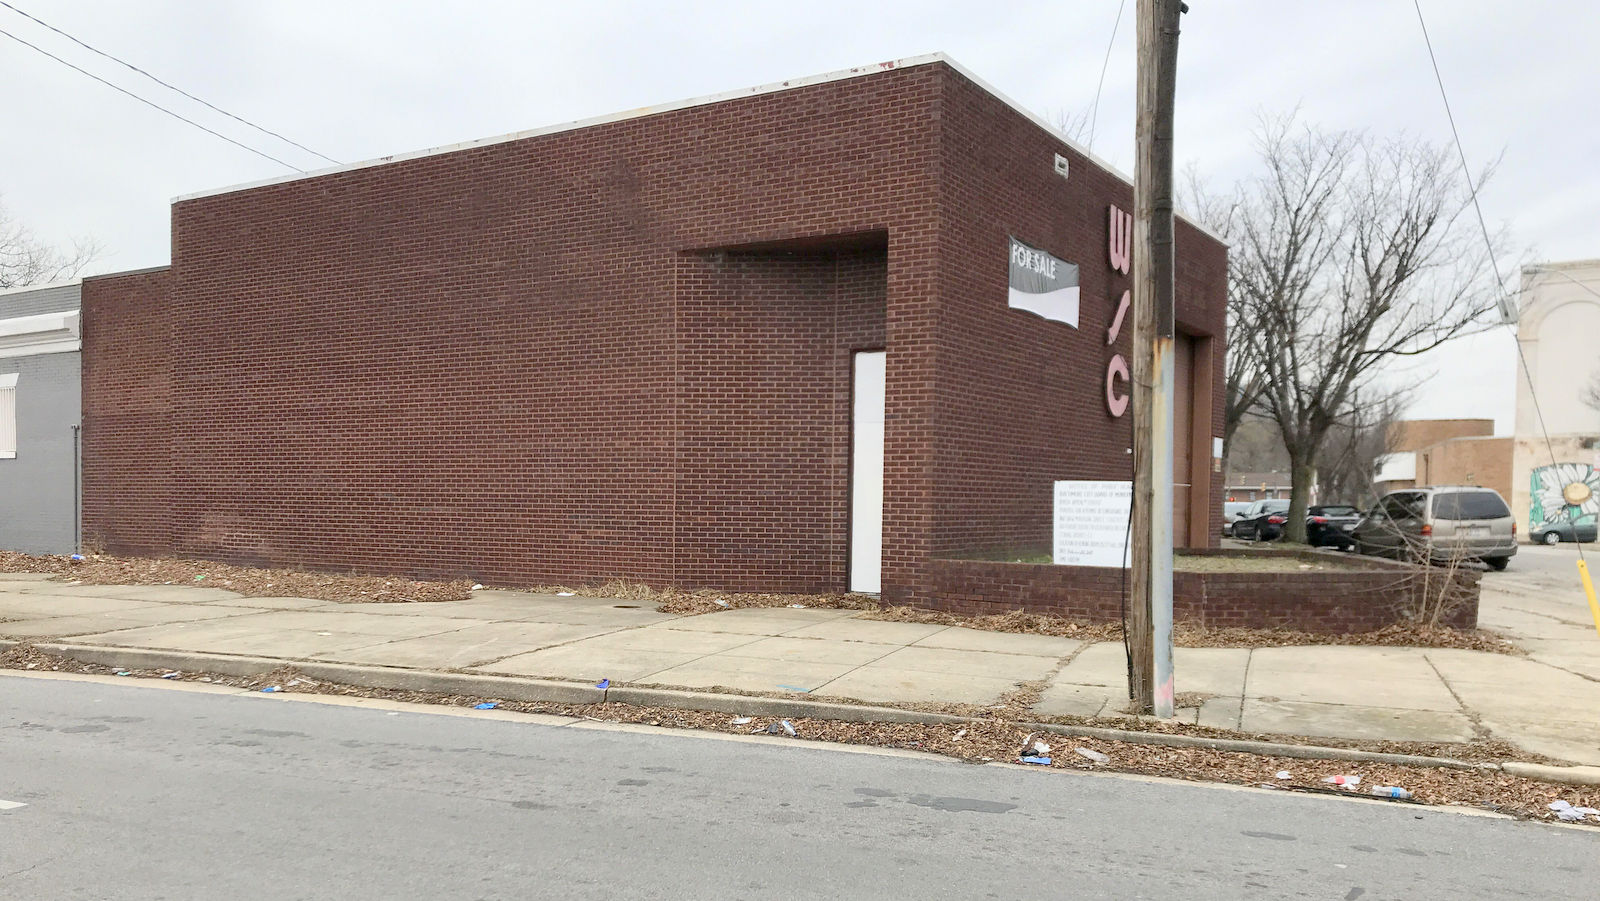 MedMark Treatment Centers is hoping to connect this building at 501 West Madison Street to an adjoining property on McCulloh Street. (Chase Hoffberger)